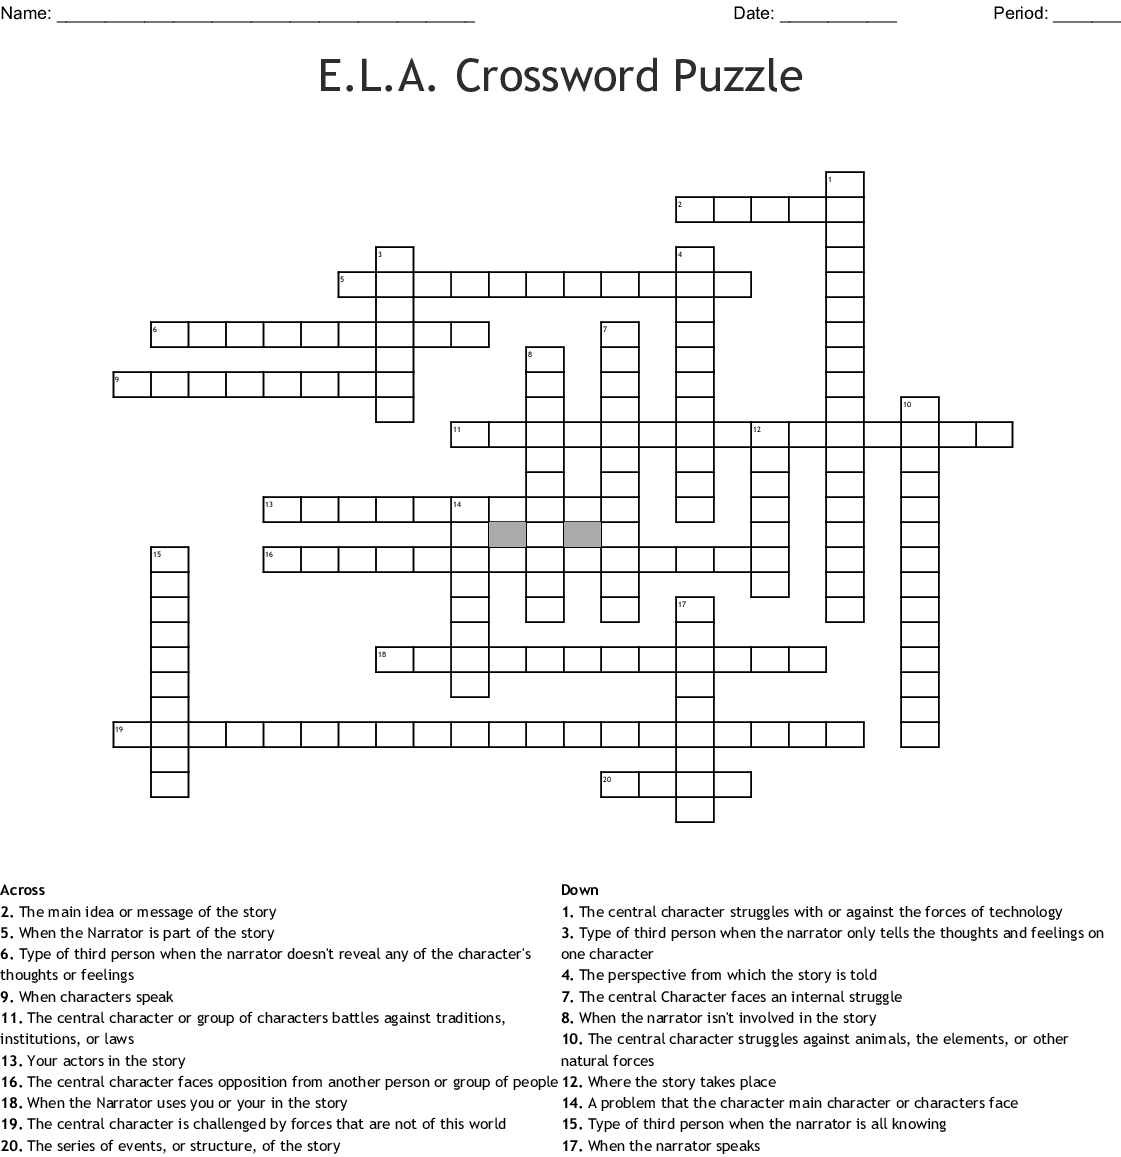 E.l.a. Crossword Puzzle Crossword - Wordmint - Crossword Printable 7Th Grade